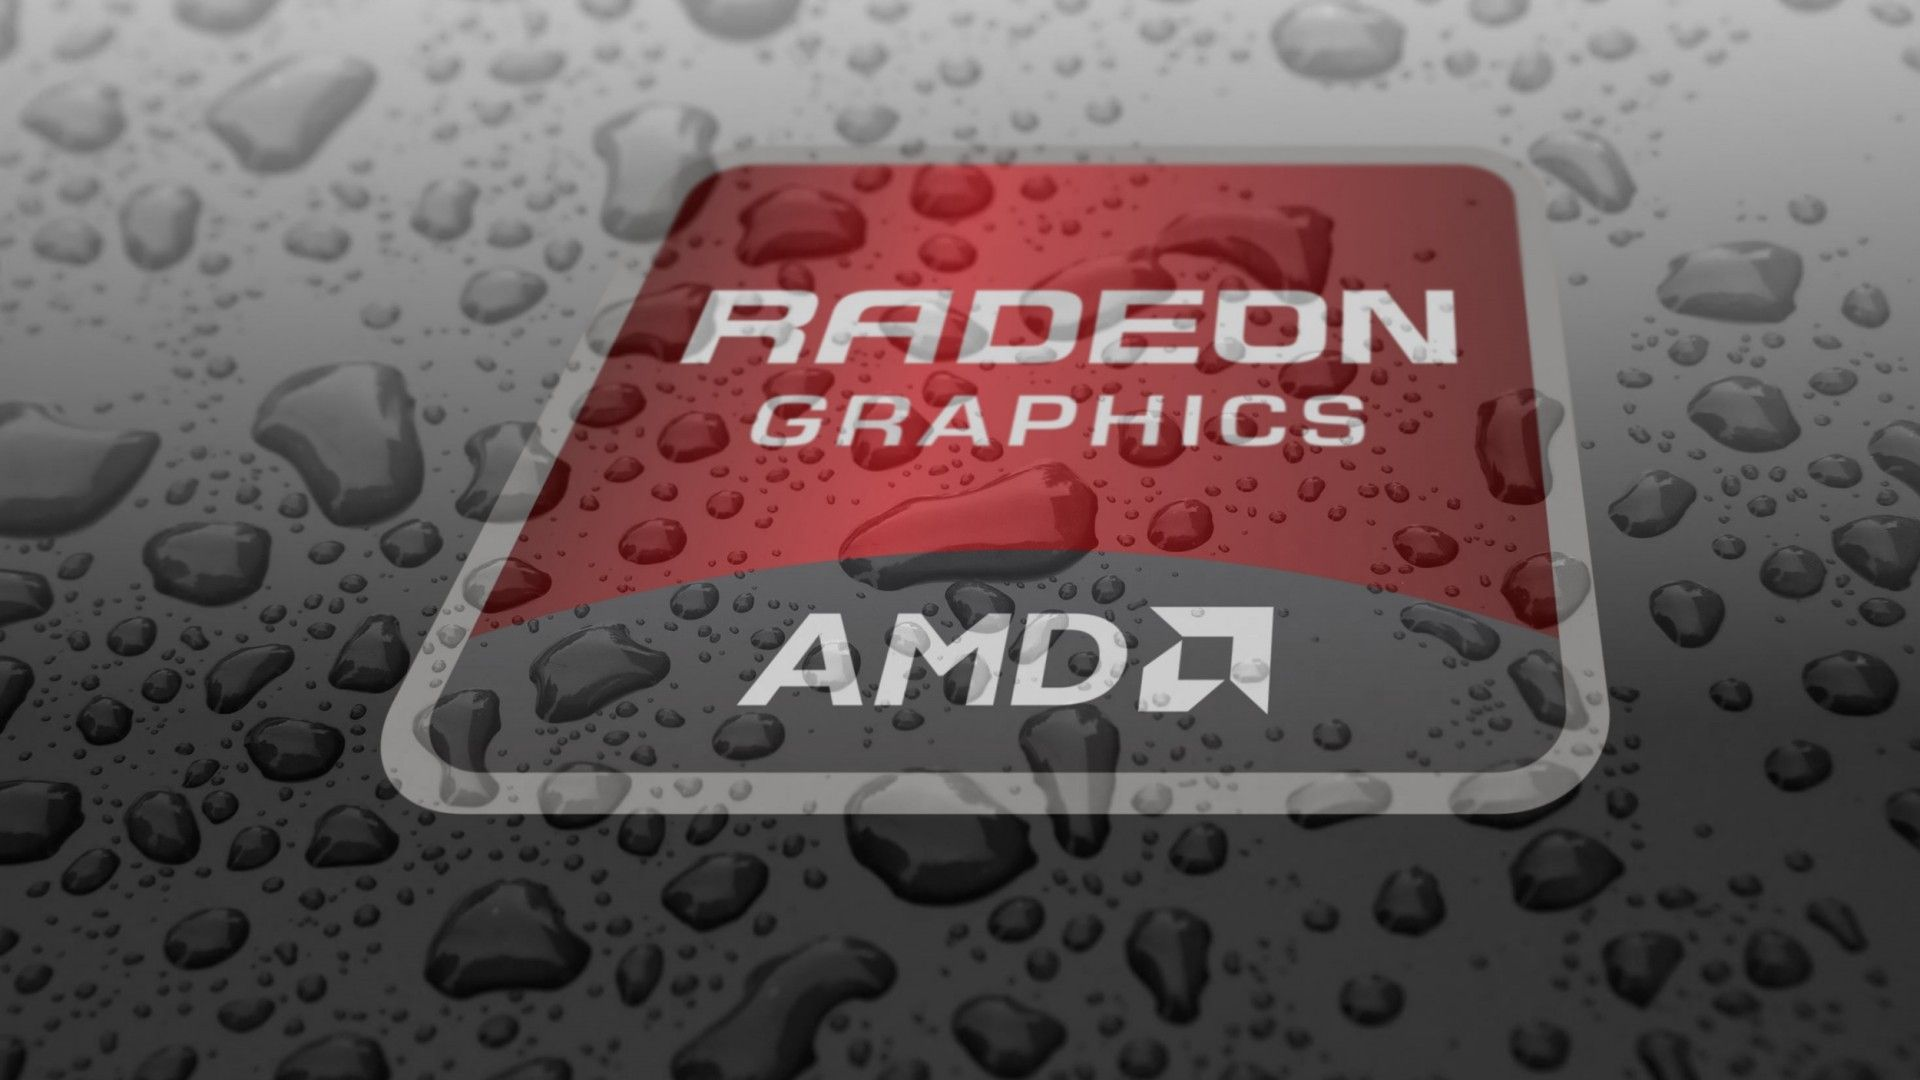 amd wallpapers 34 - [1920 x 1080]